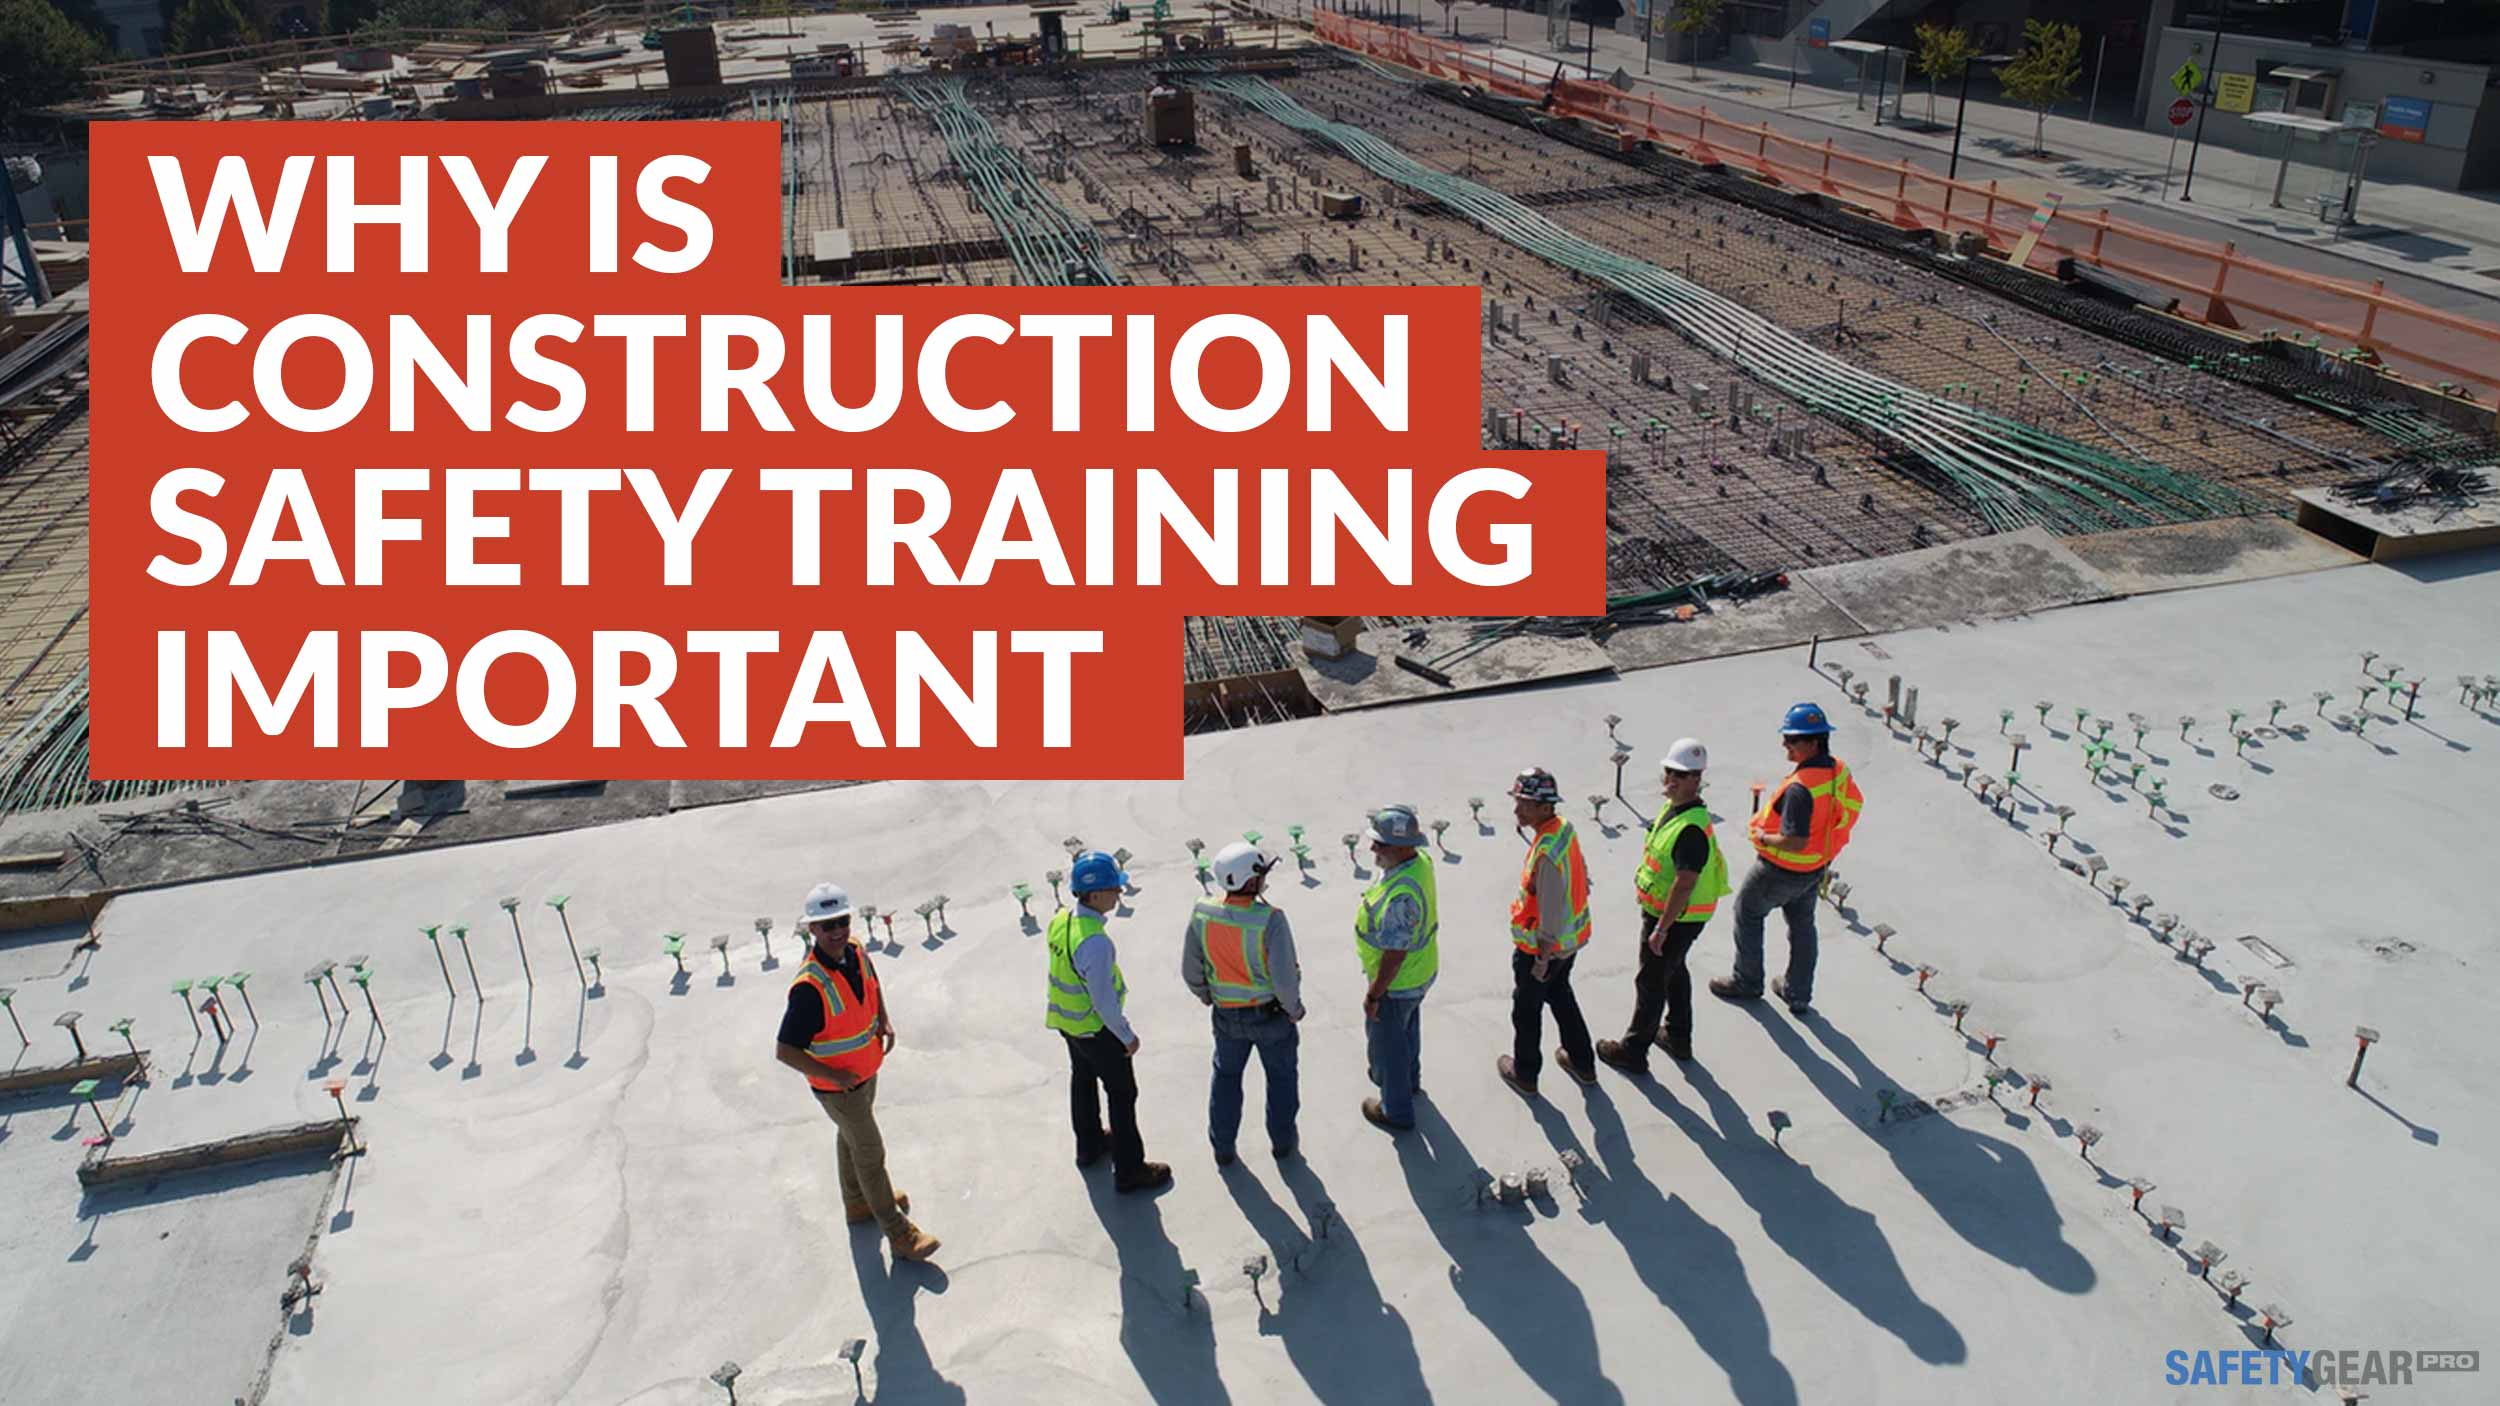 Why is construction safety training important?